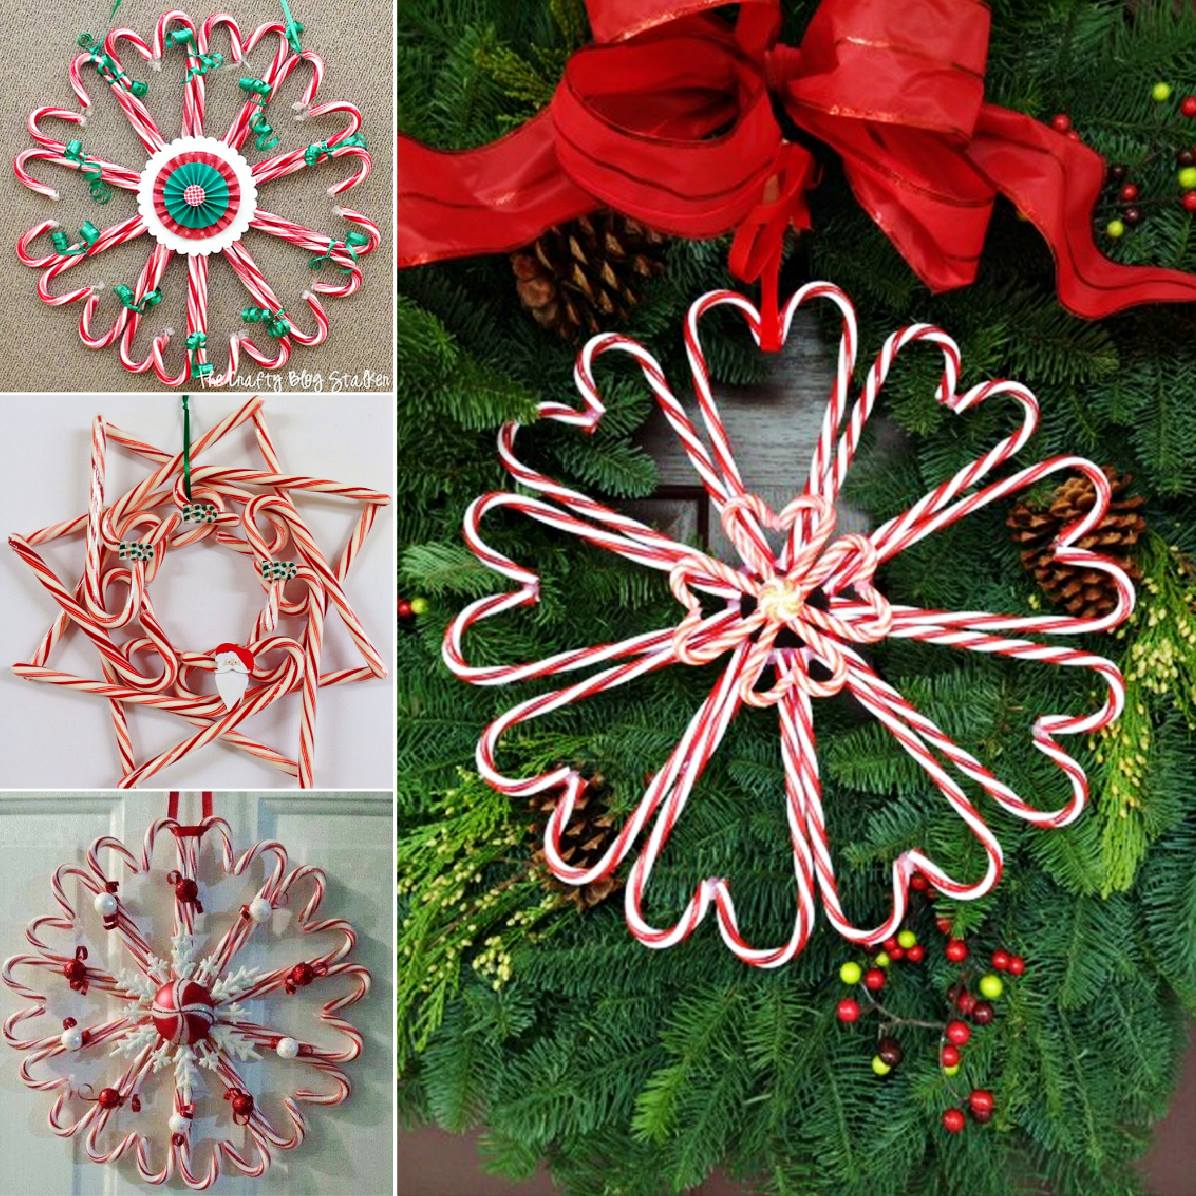 candy can wreath DIY F Wonderful DIY Christmas Candy Cane Wreath